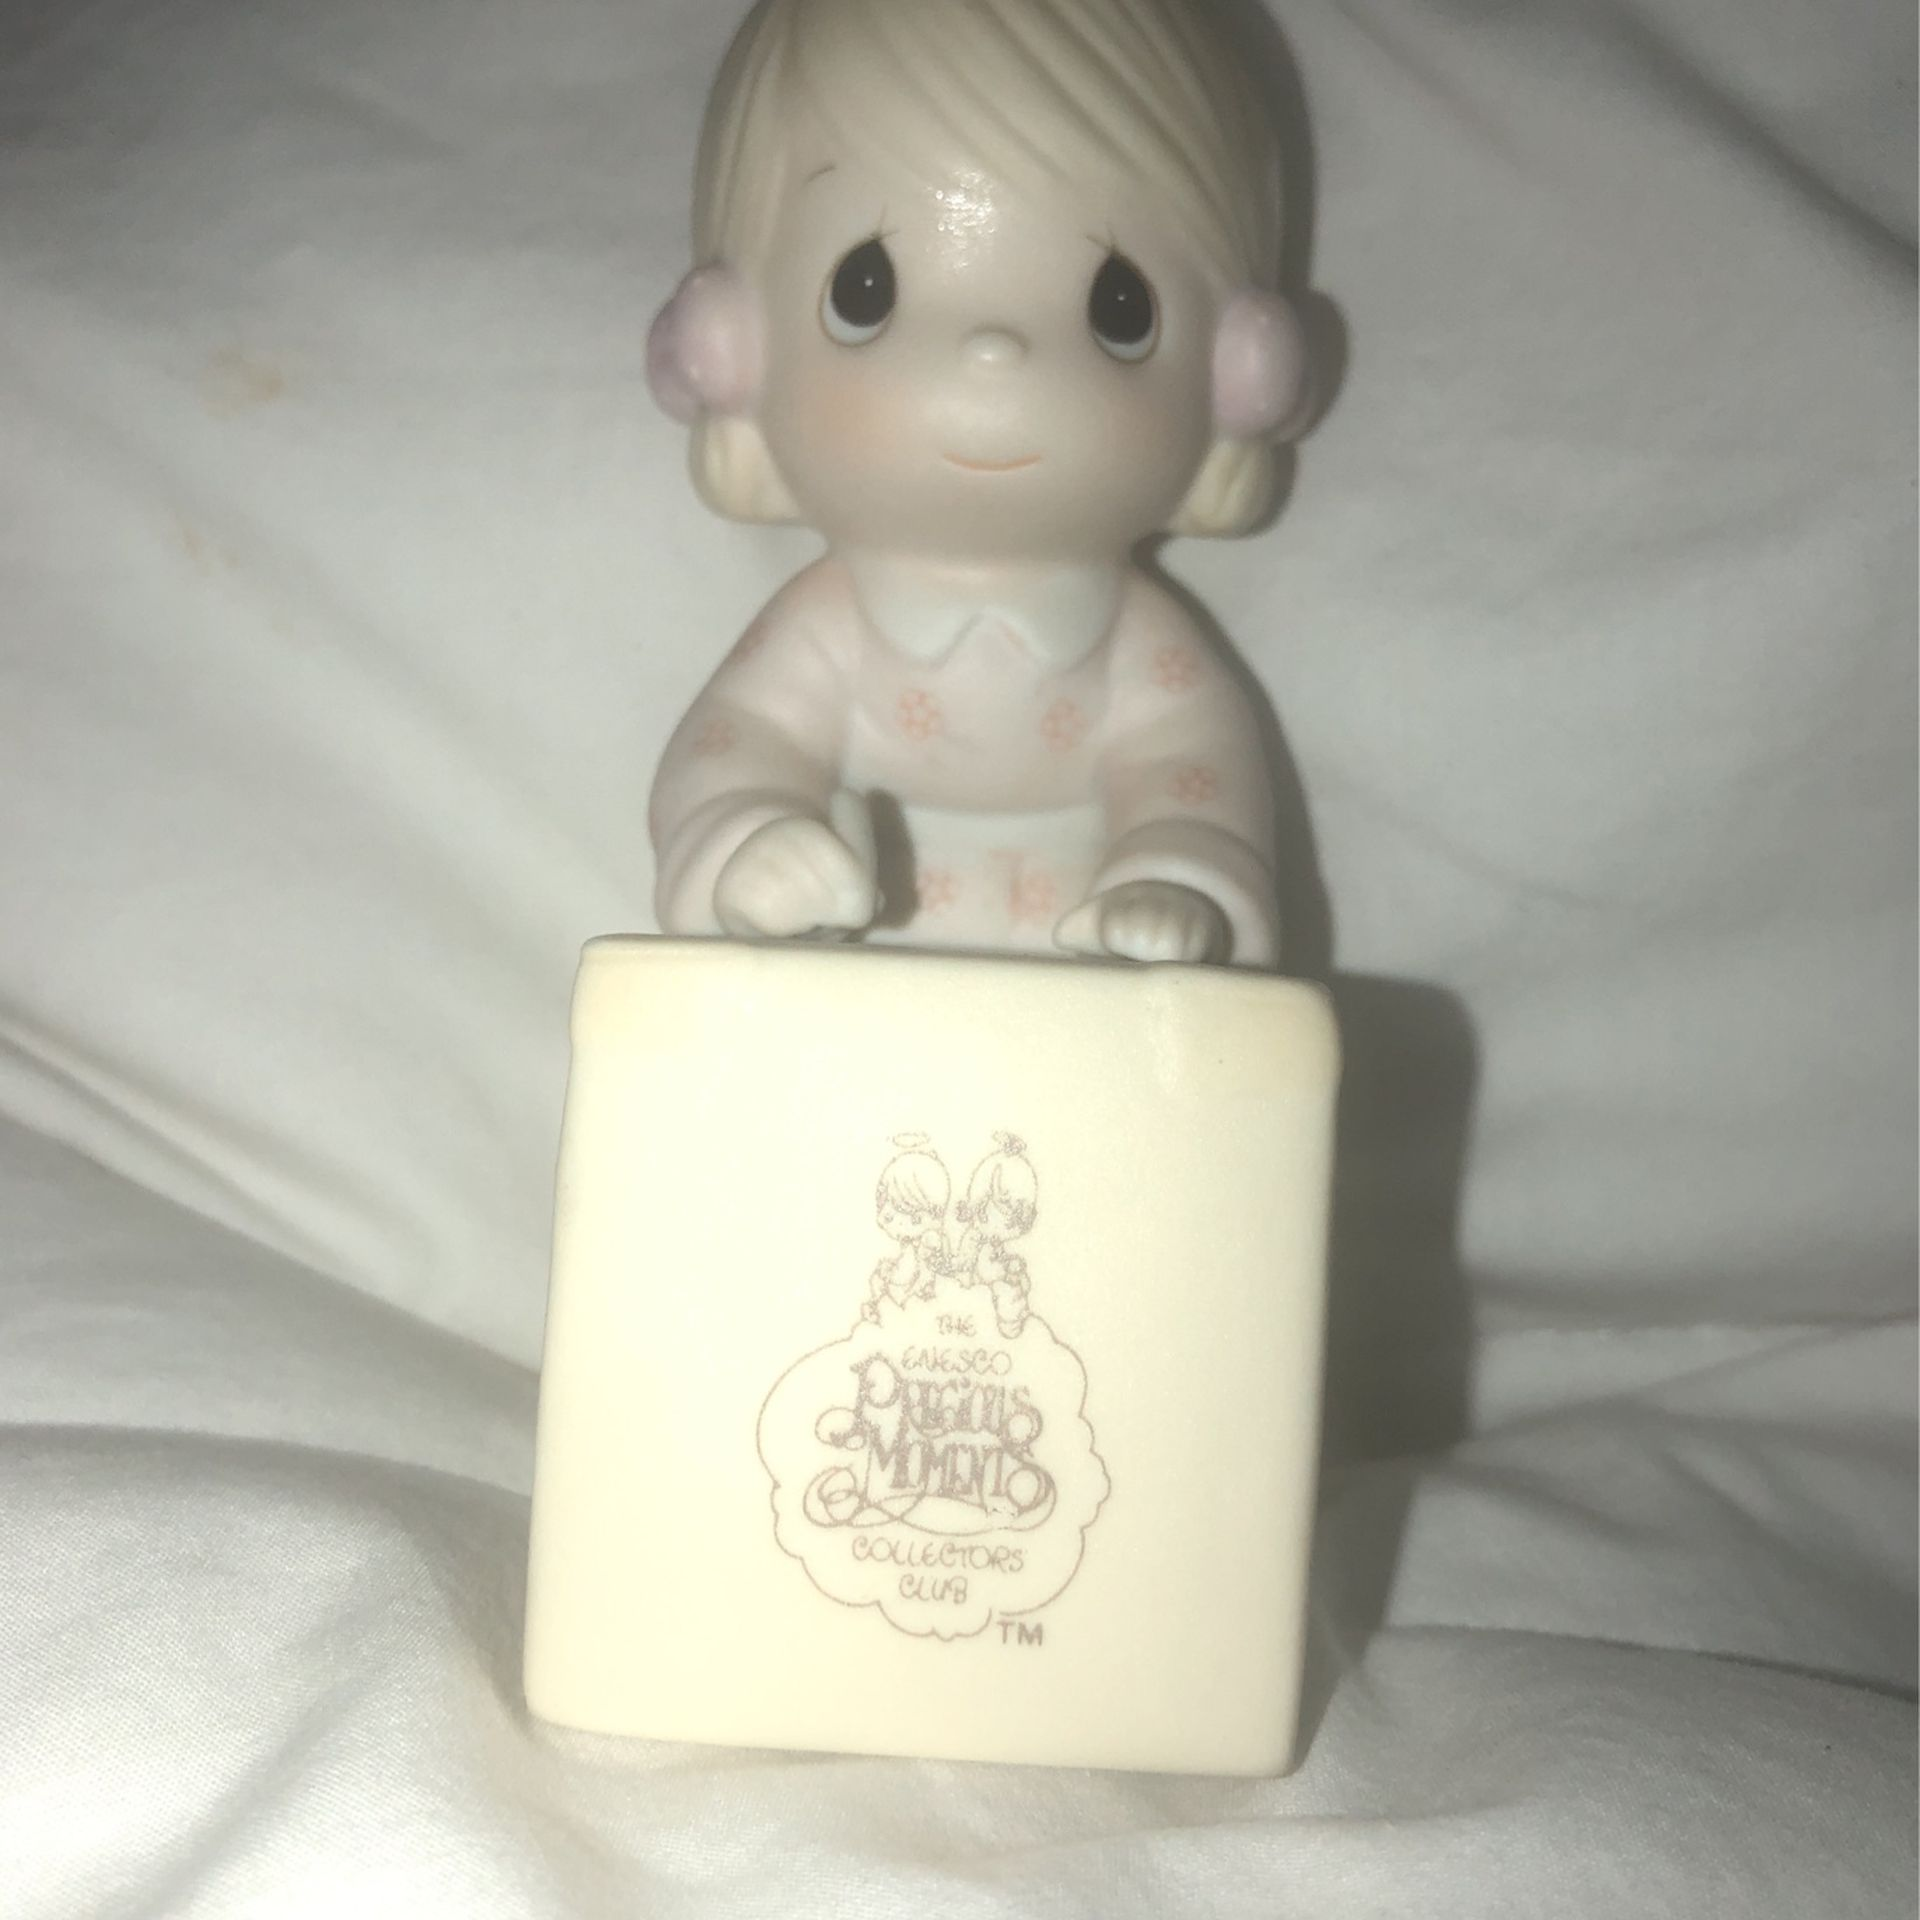 """1987 Precious Moments """"Sharing Is Universal """" figurine"""